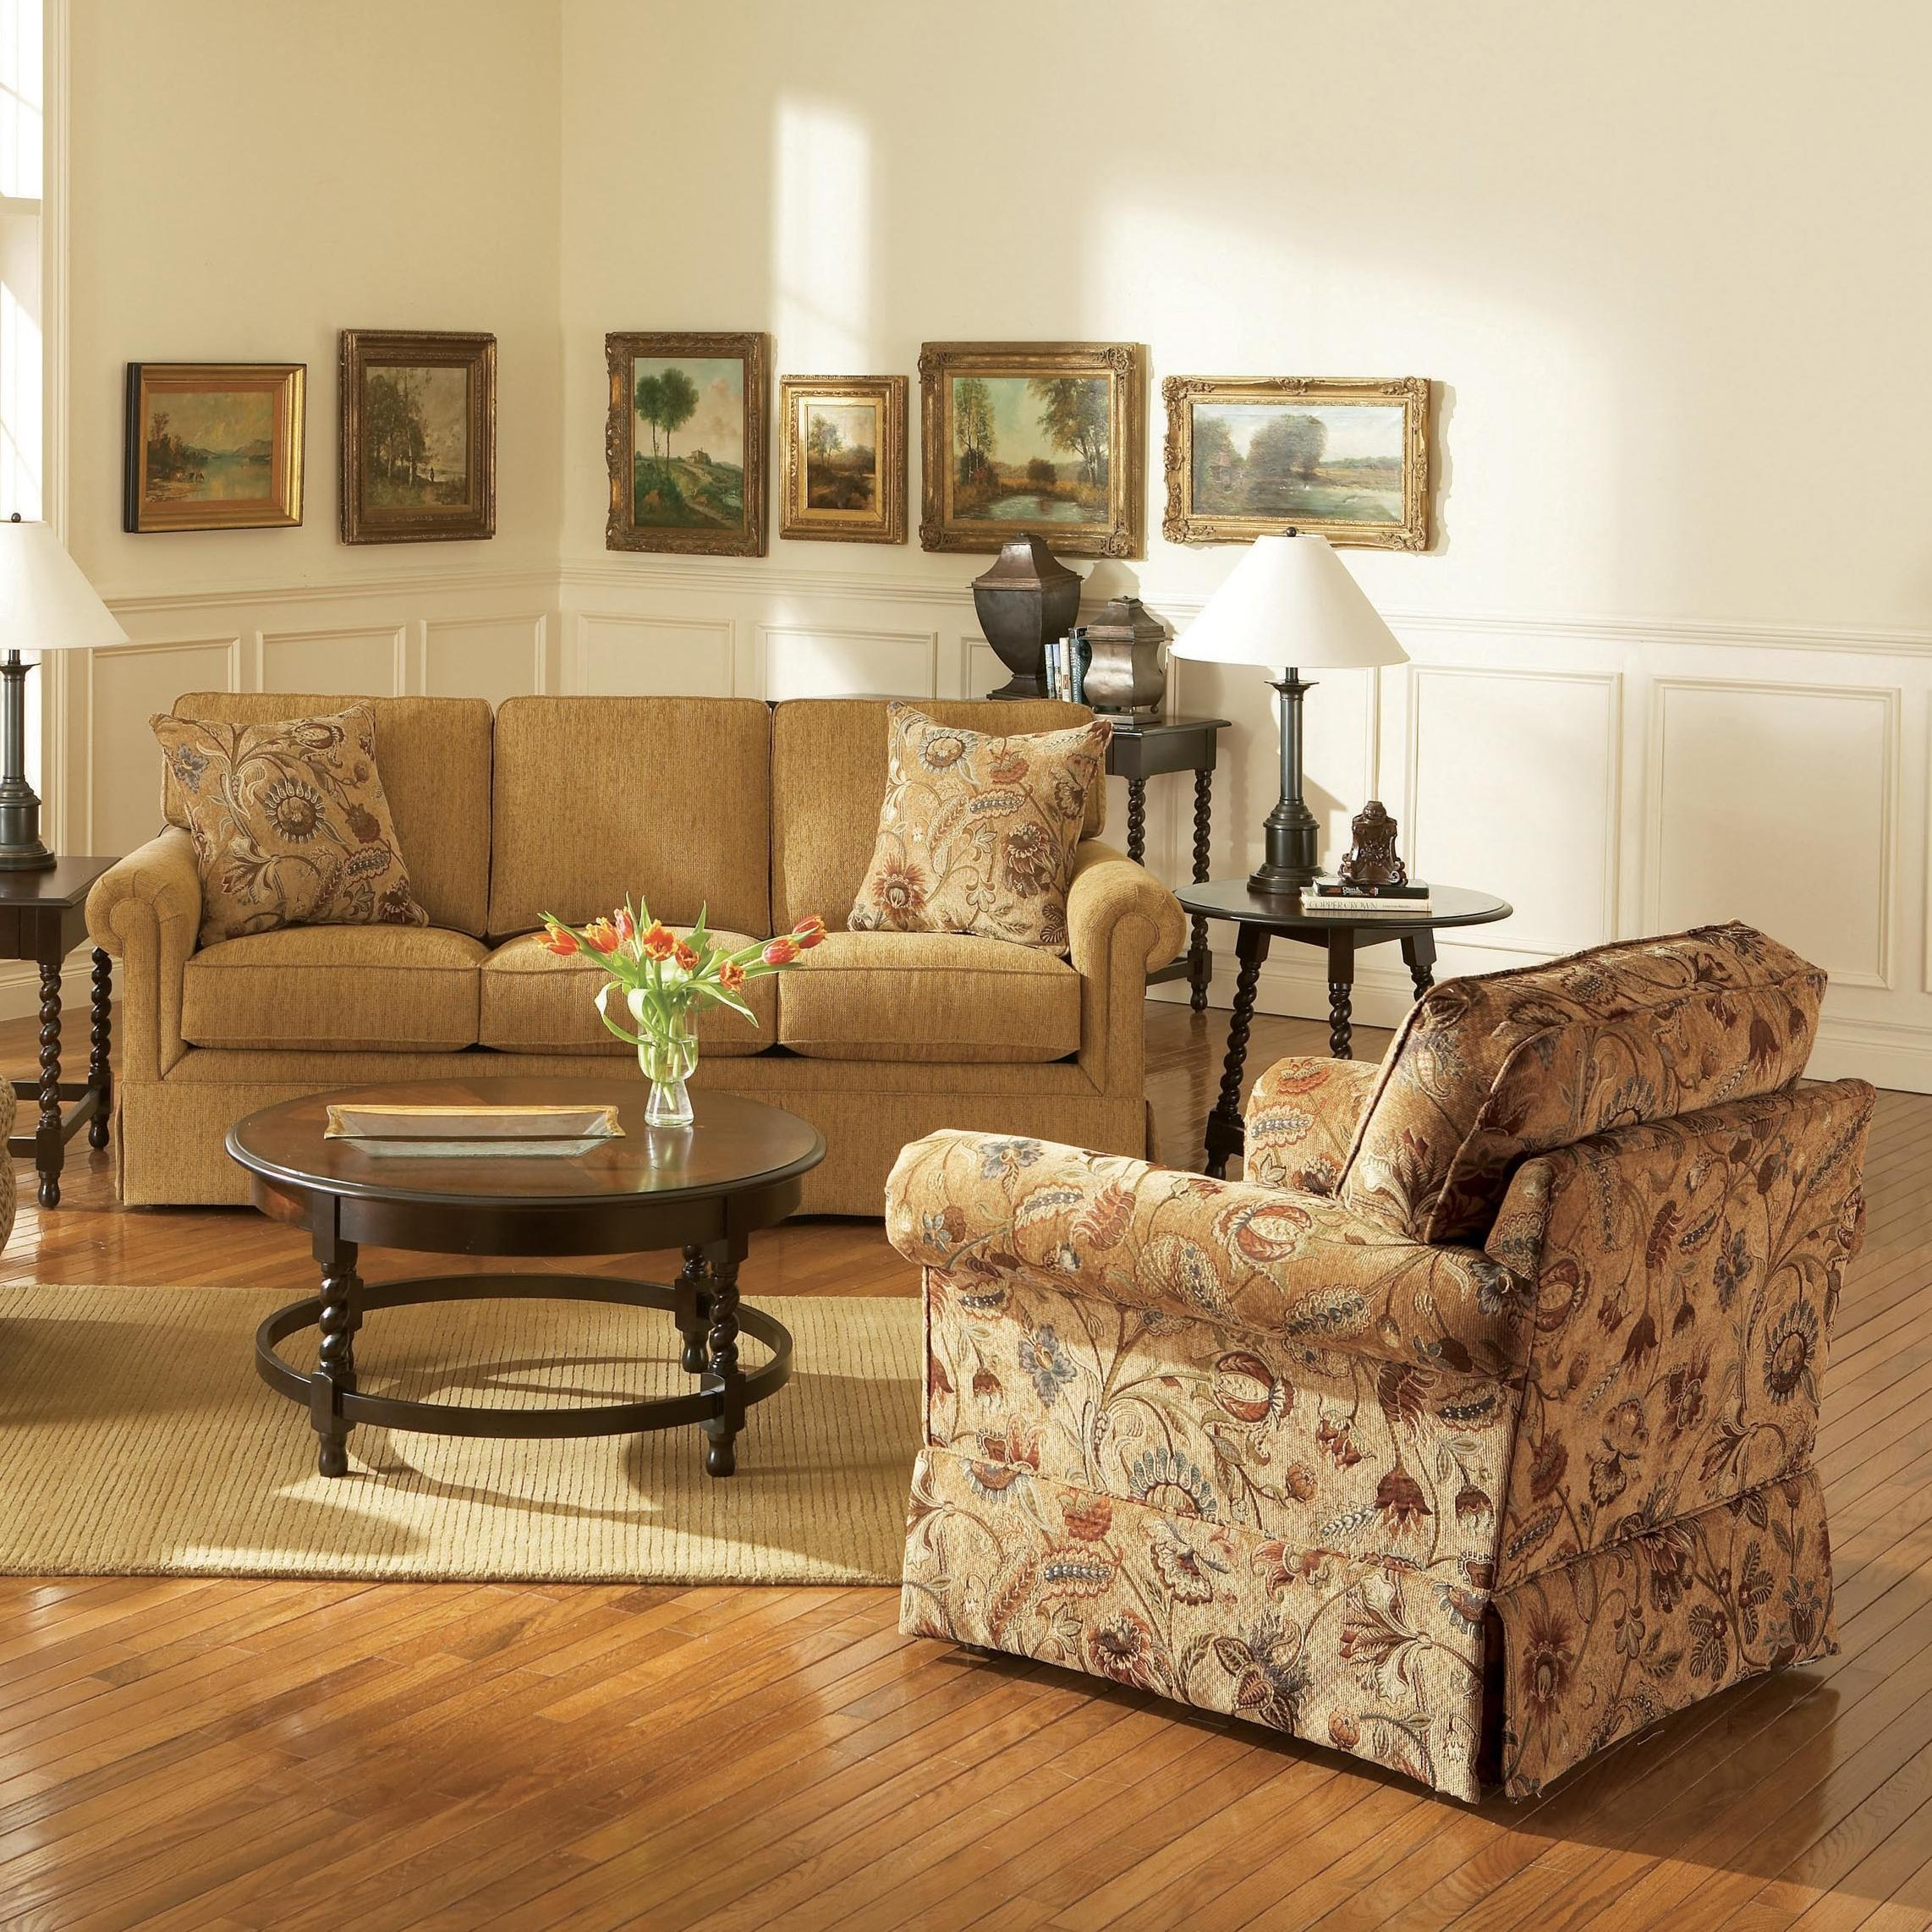 Broyhill Furniture Audrey Chair And Ottoman With Skirt – Wayside Within Broyhill Sofas (Image 2 of 20)